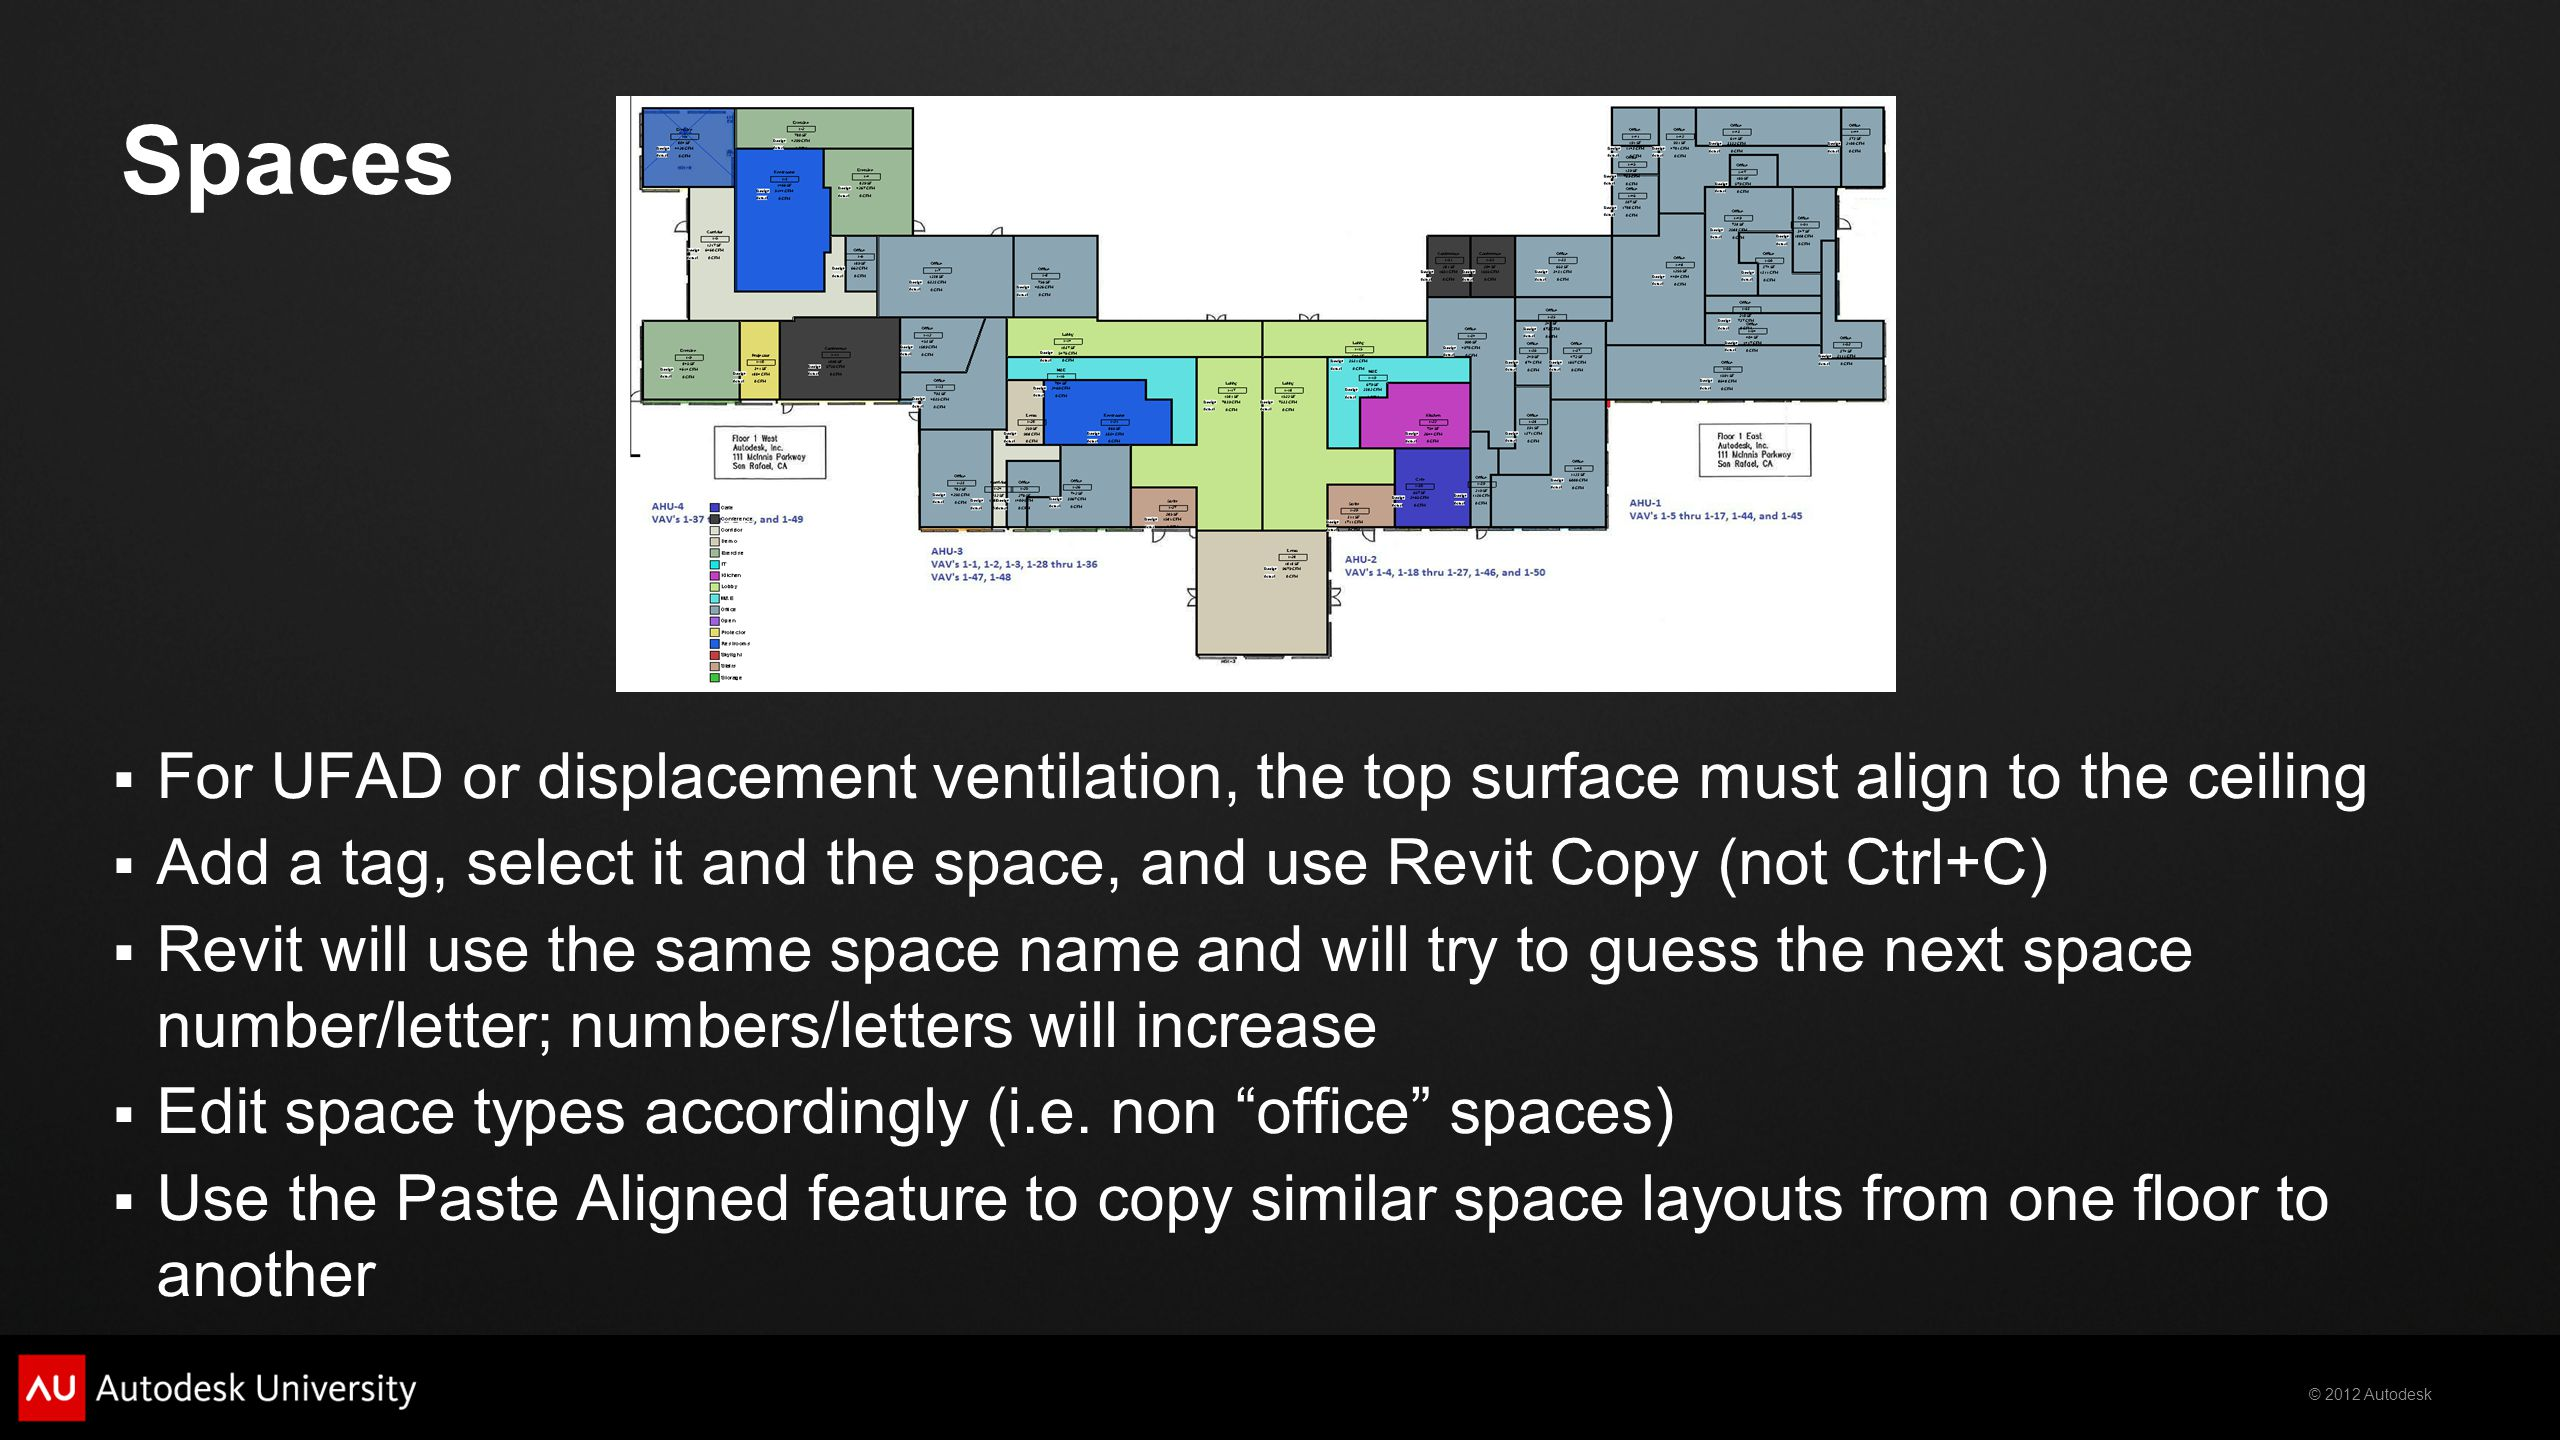 Spaces For UFAD or displacement ventilation, the top surface must align to the ceiling.